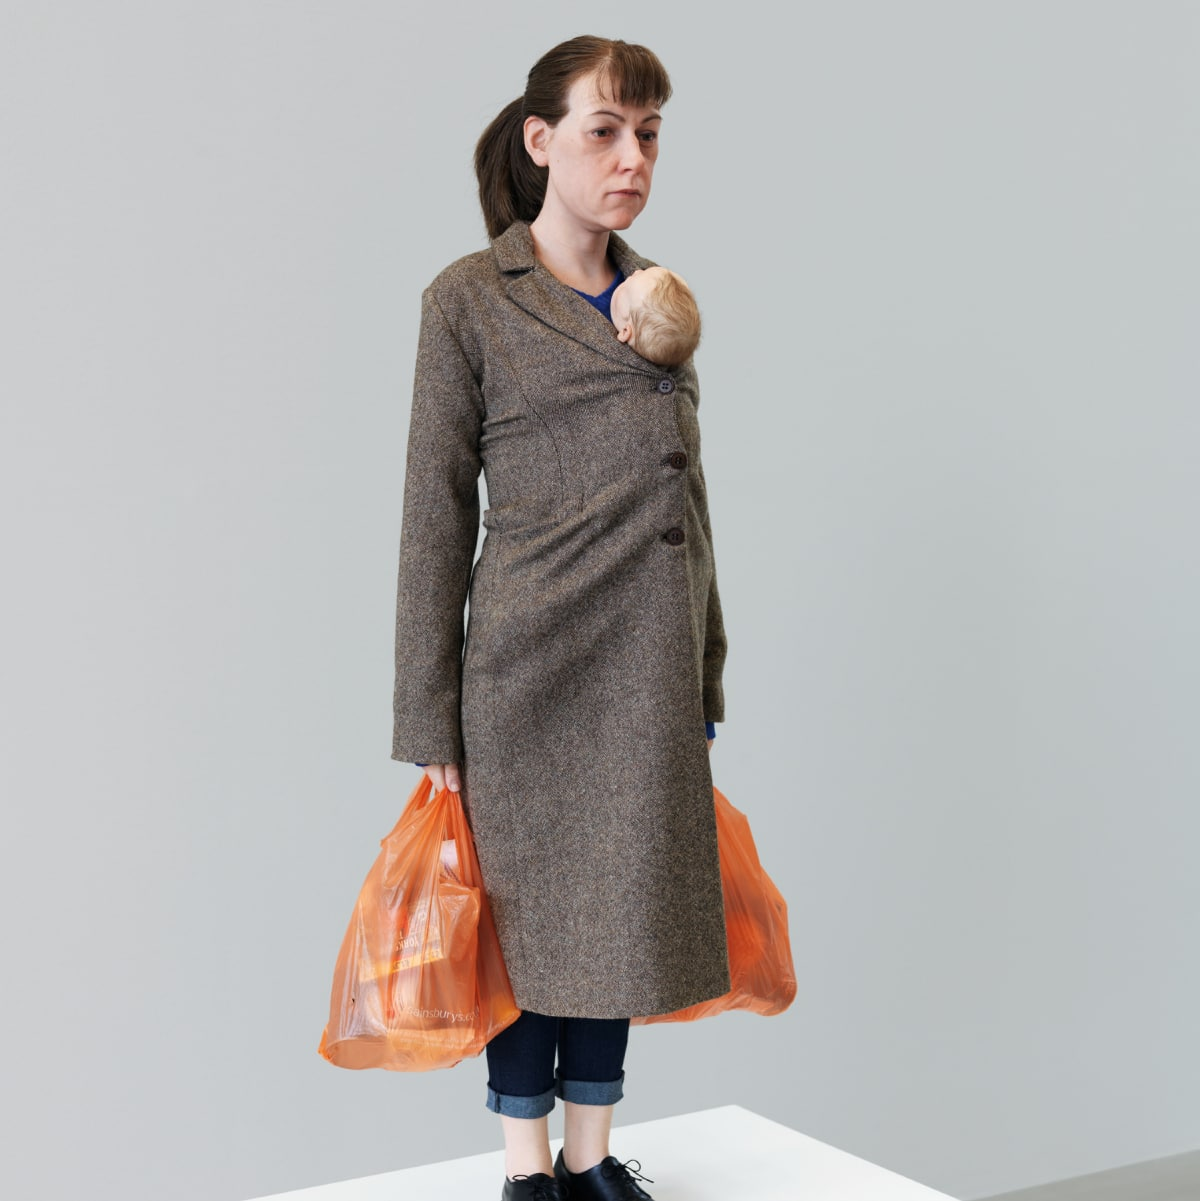 Ron Mueck: Woman with Shopping